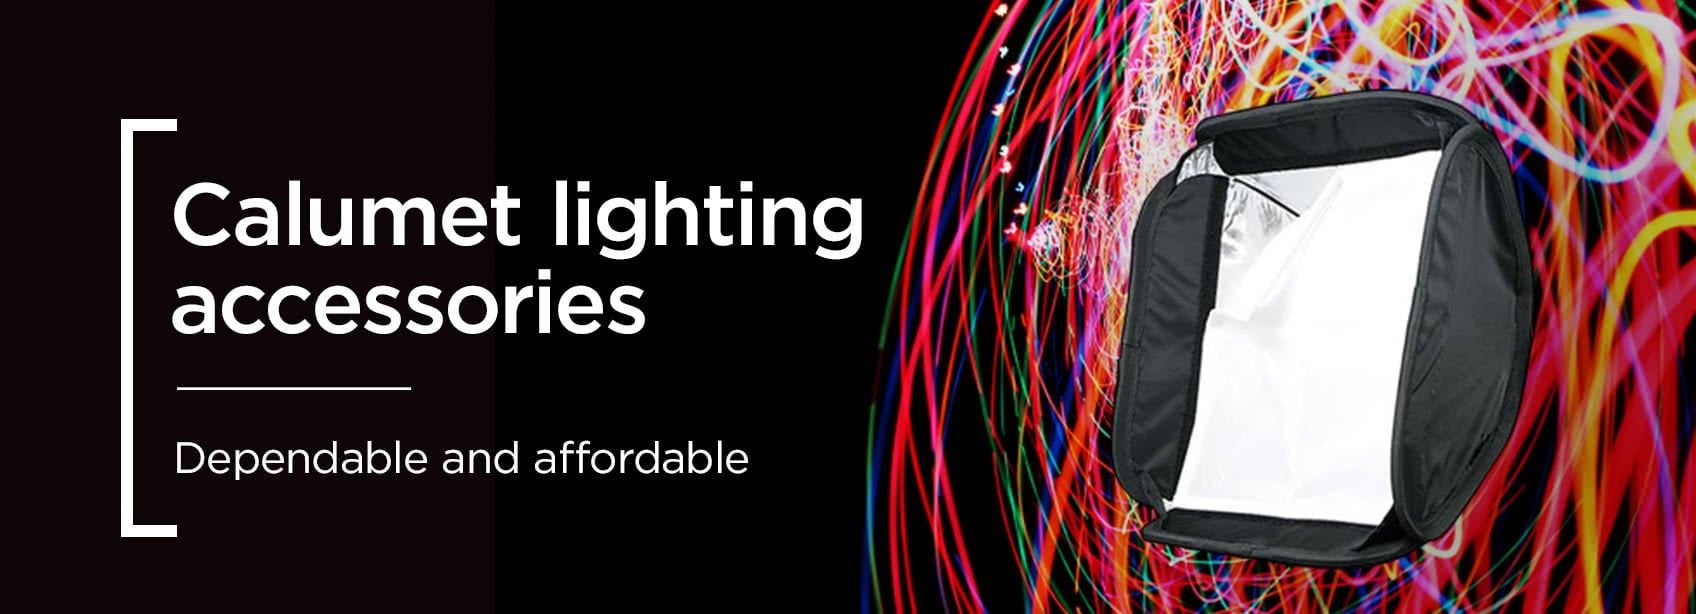 Calumet Lighting Products - Dependable and affordable